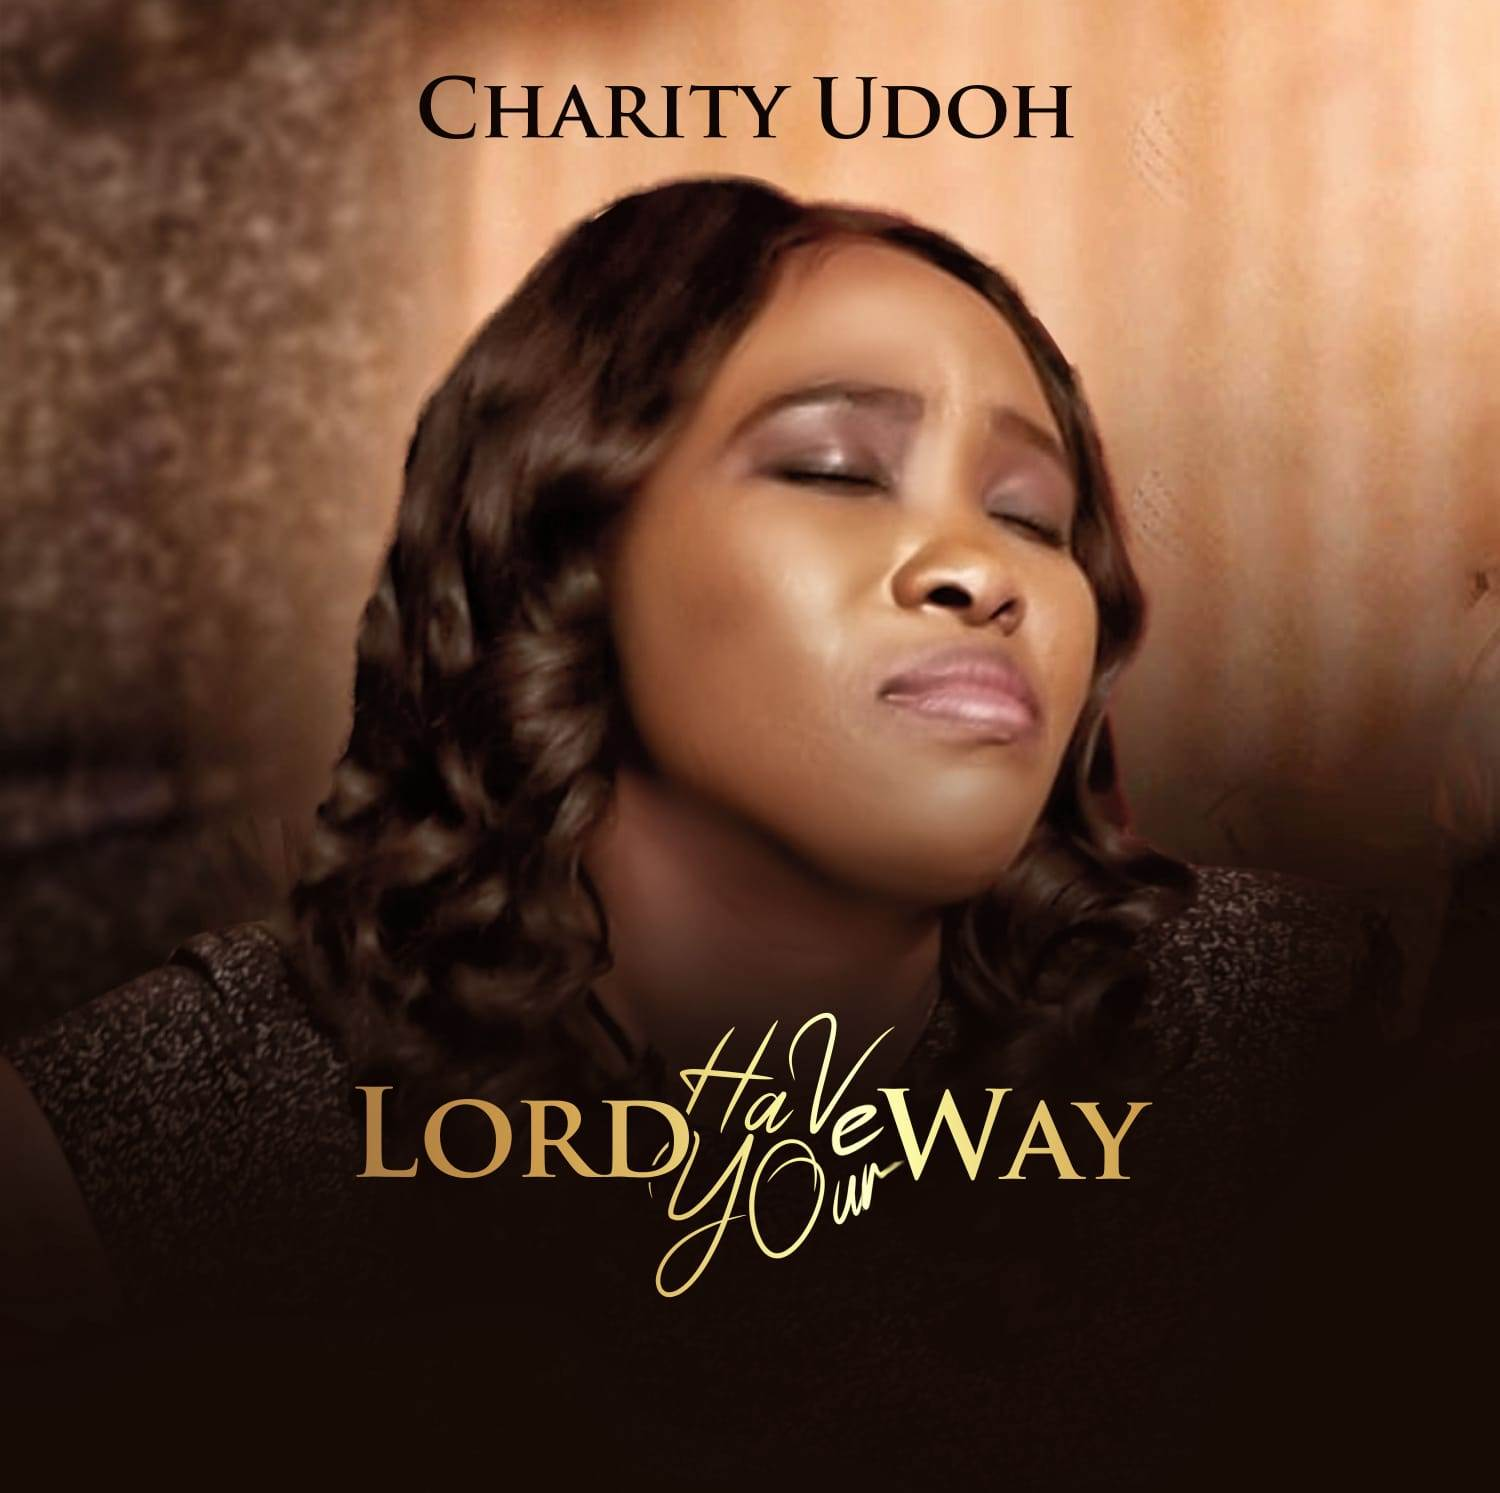 LORD HAVE YOUR WAY - Charity Udoh  [@OfficialCharityUdoh]